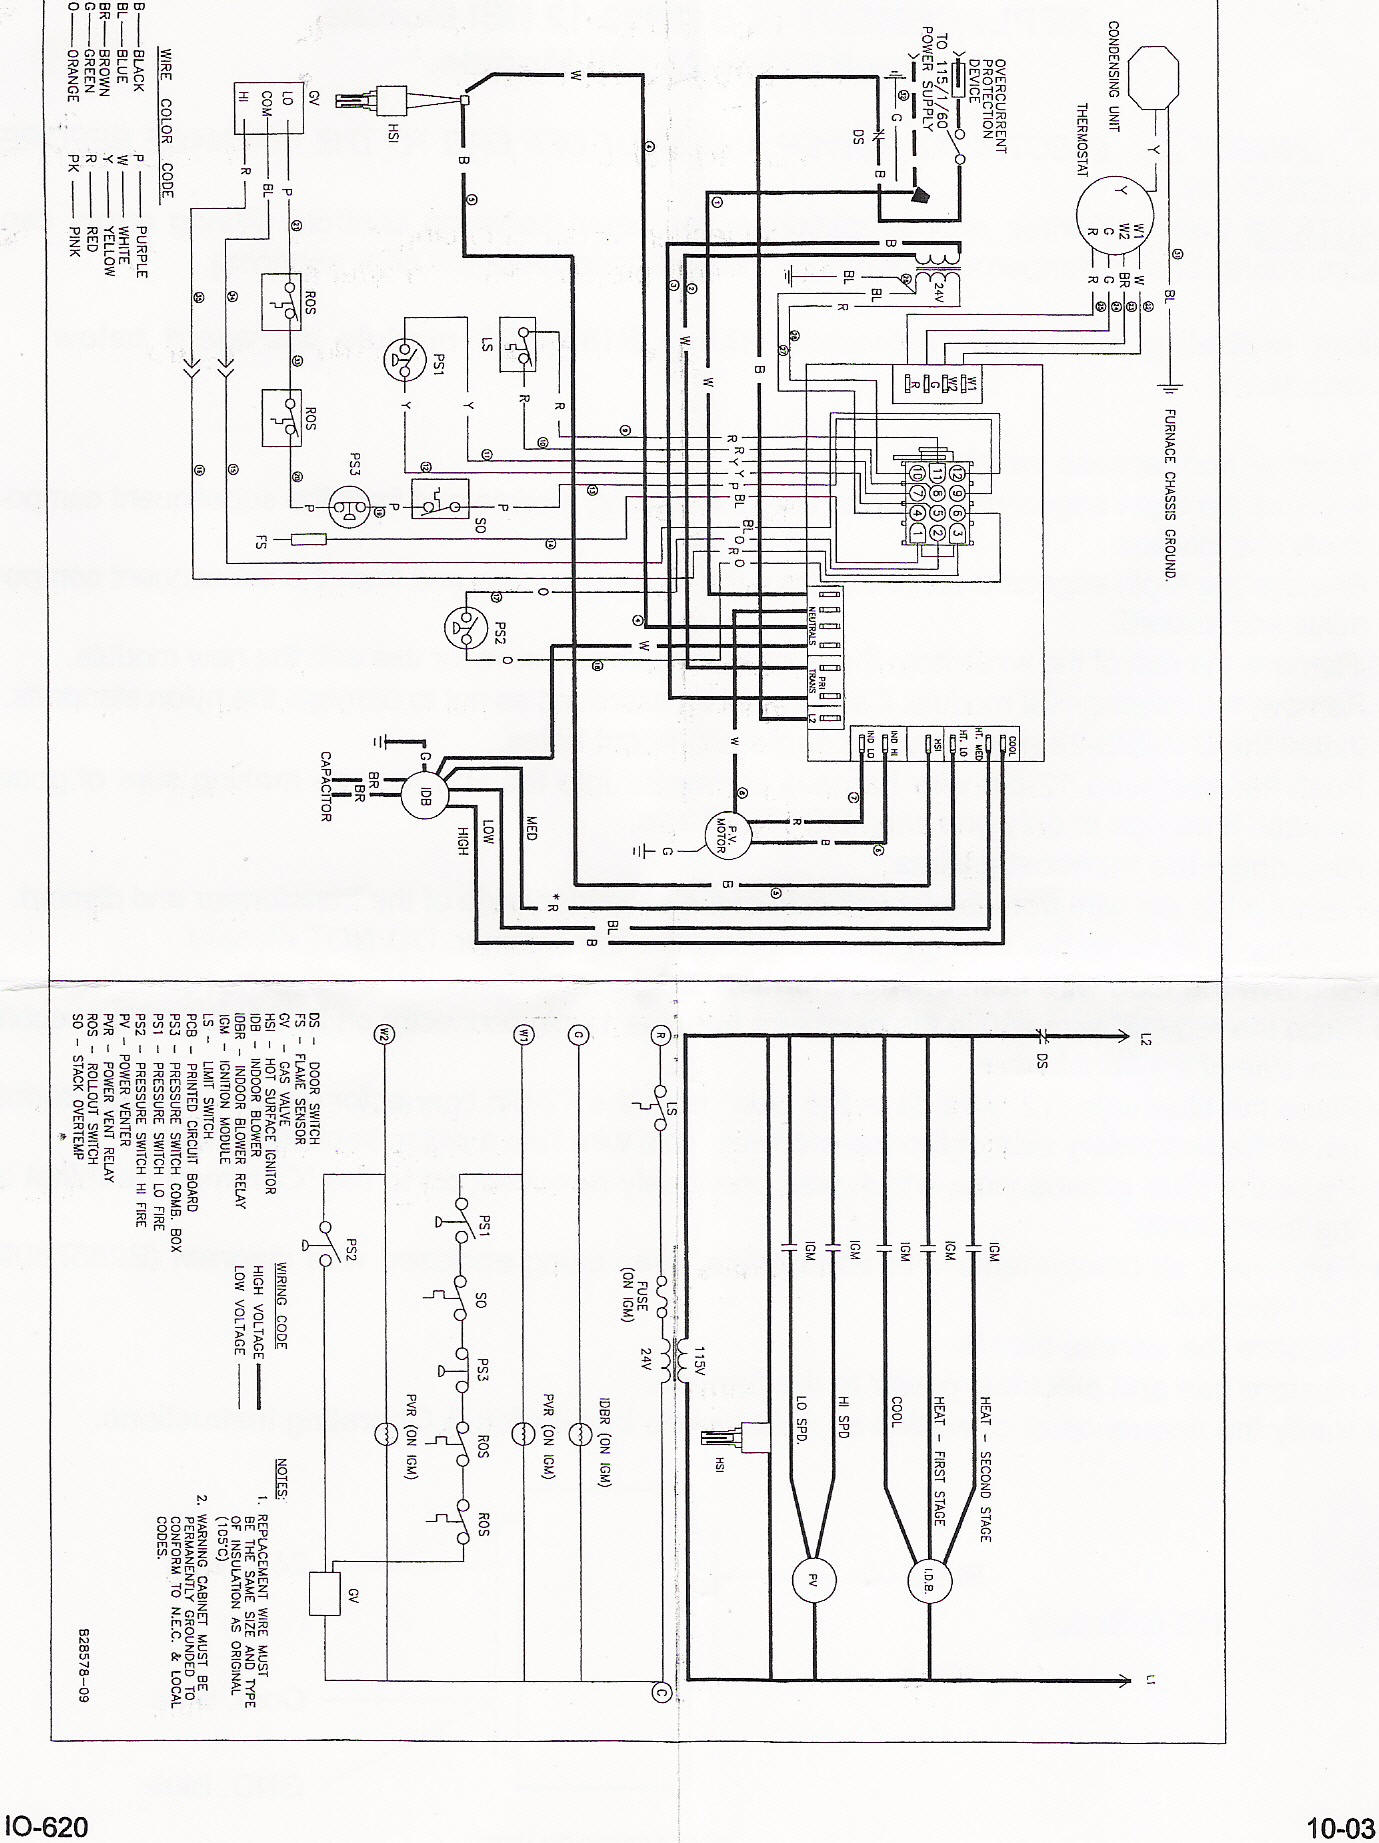 Furnace circuit board wiring trusted wiring diagram goodman control board b18099 23 instructions furnace automatic ignition system furnace circuit board wiring cheapraybanclubmaster Choice Image